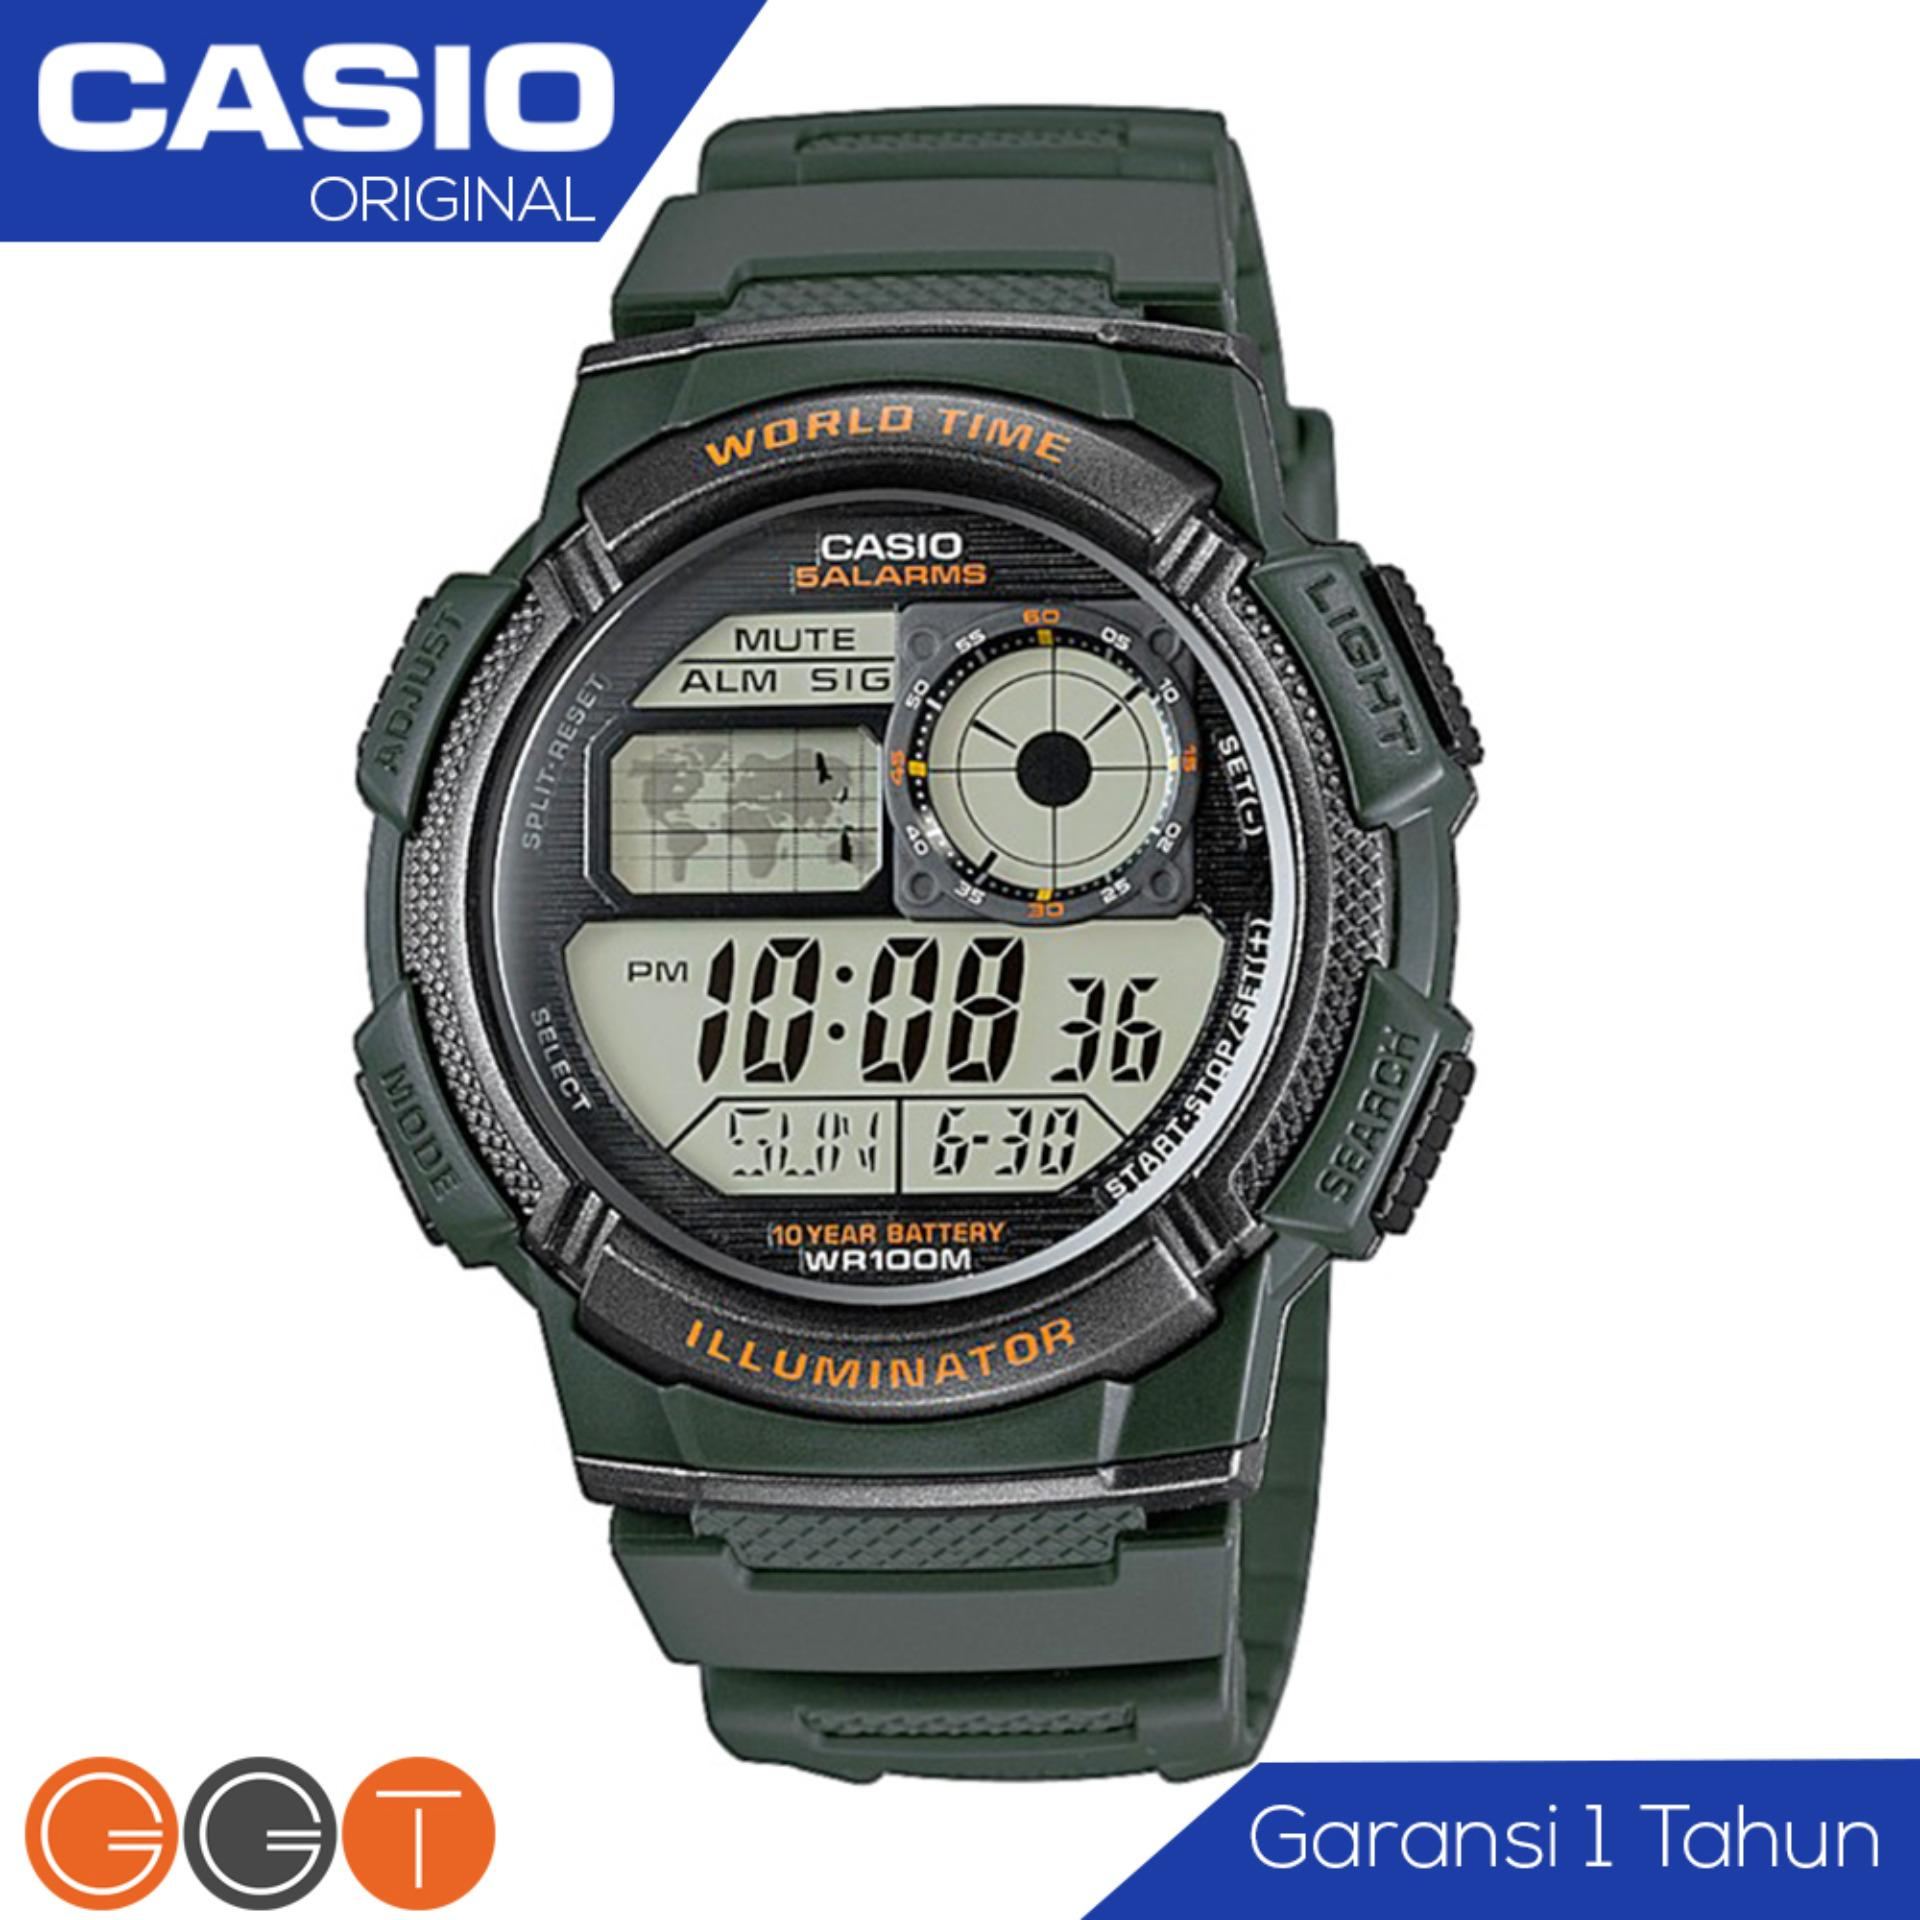 CASIO Army Illuminator AE-1000W-3AVDF - Jam Tangan Pria - Tali Karet - Digital Movement - Hijau